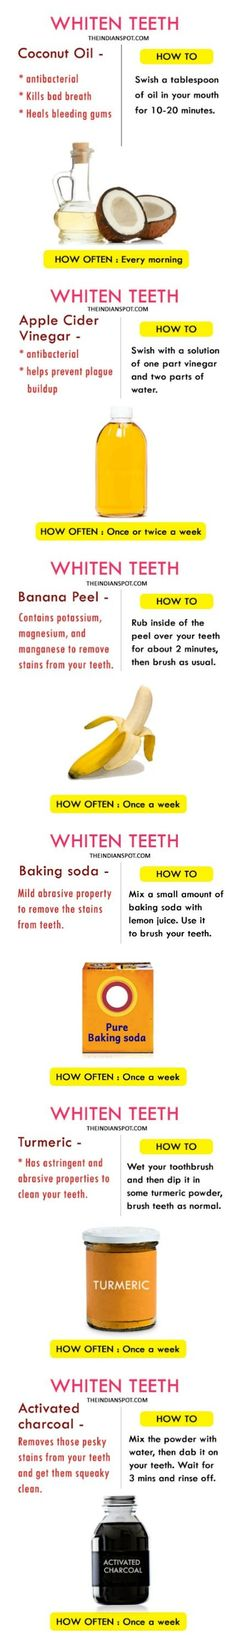 whiten teeth http://reviewscircle.com/Teeth-Whitening-4-You